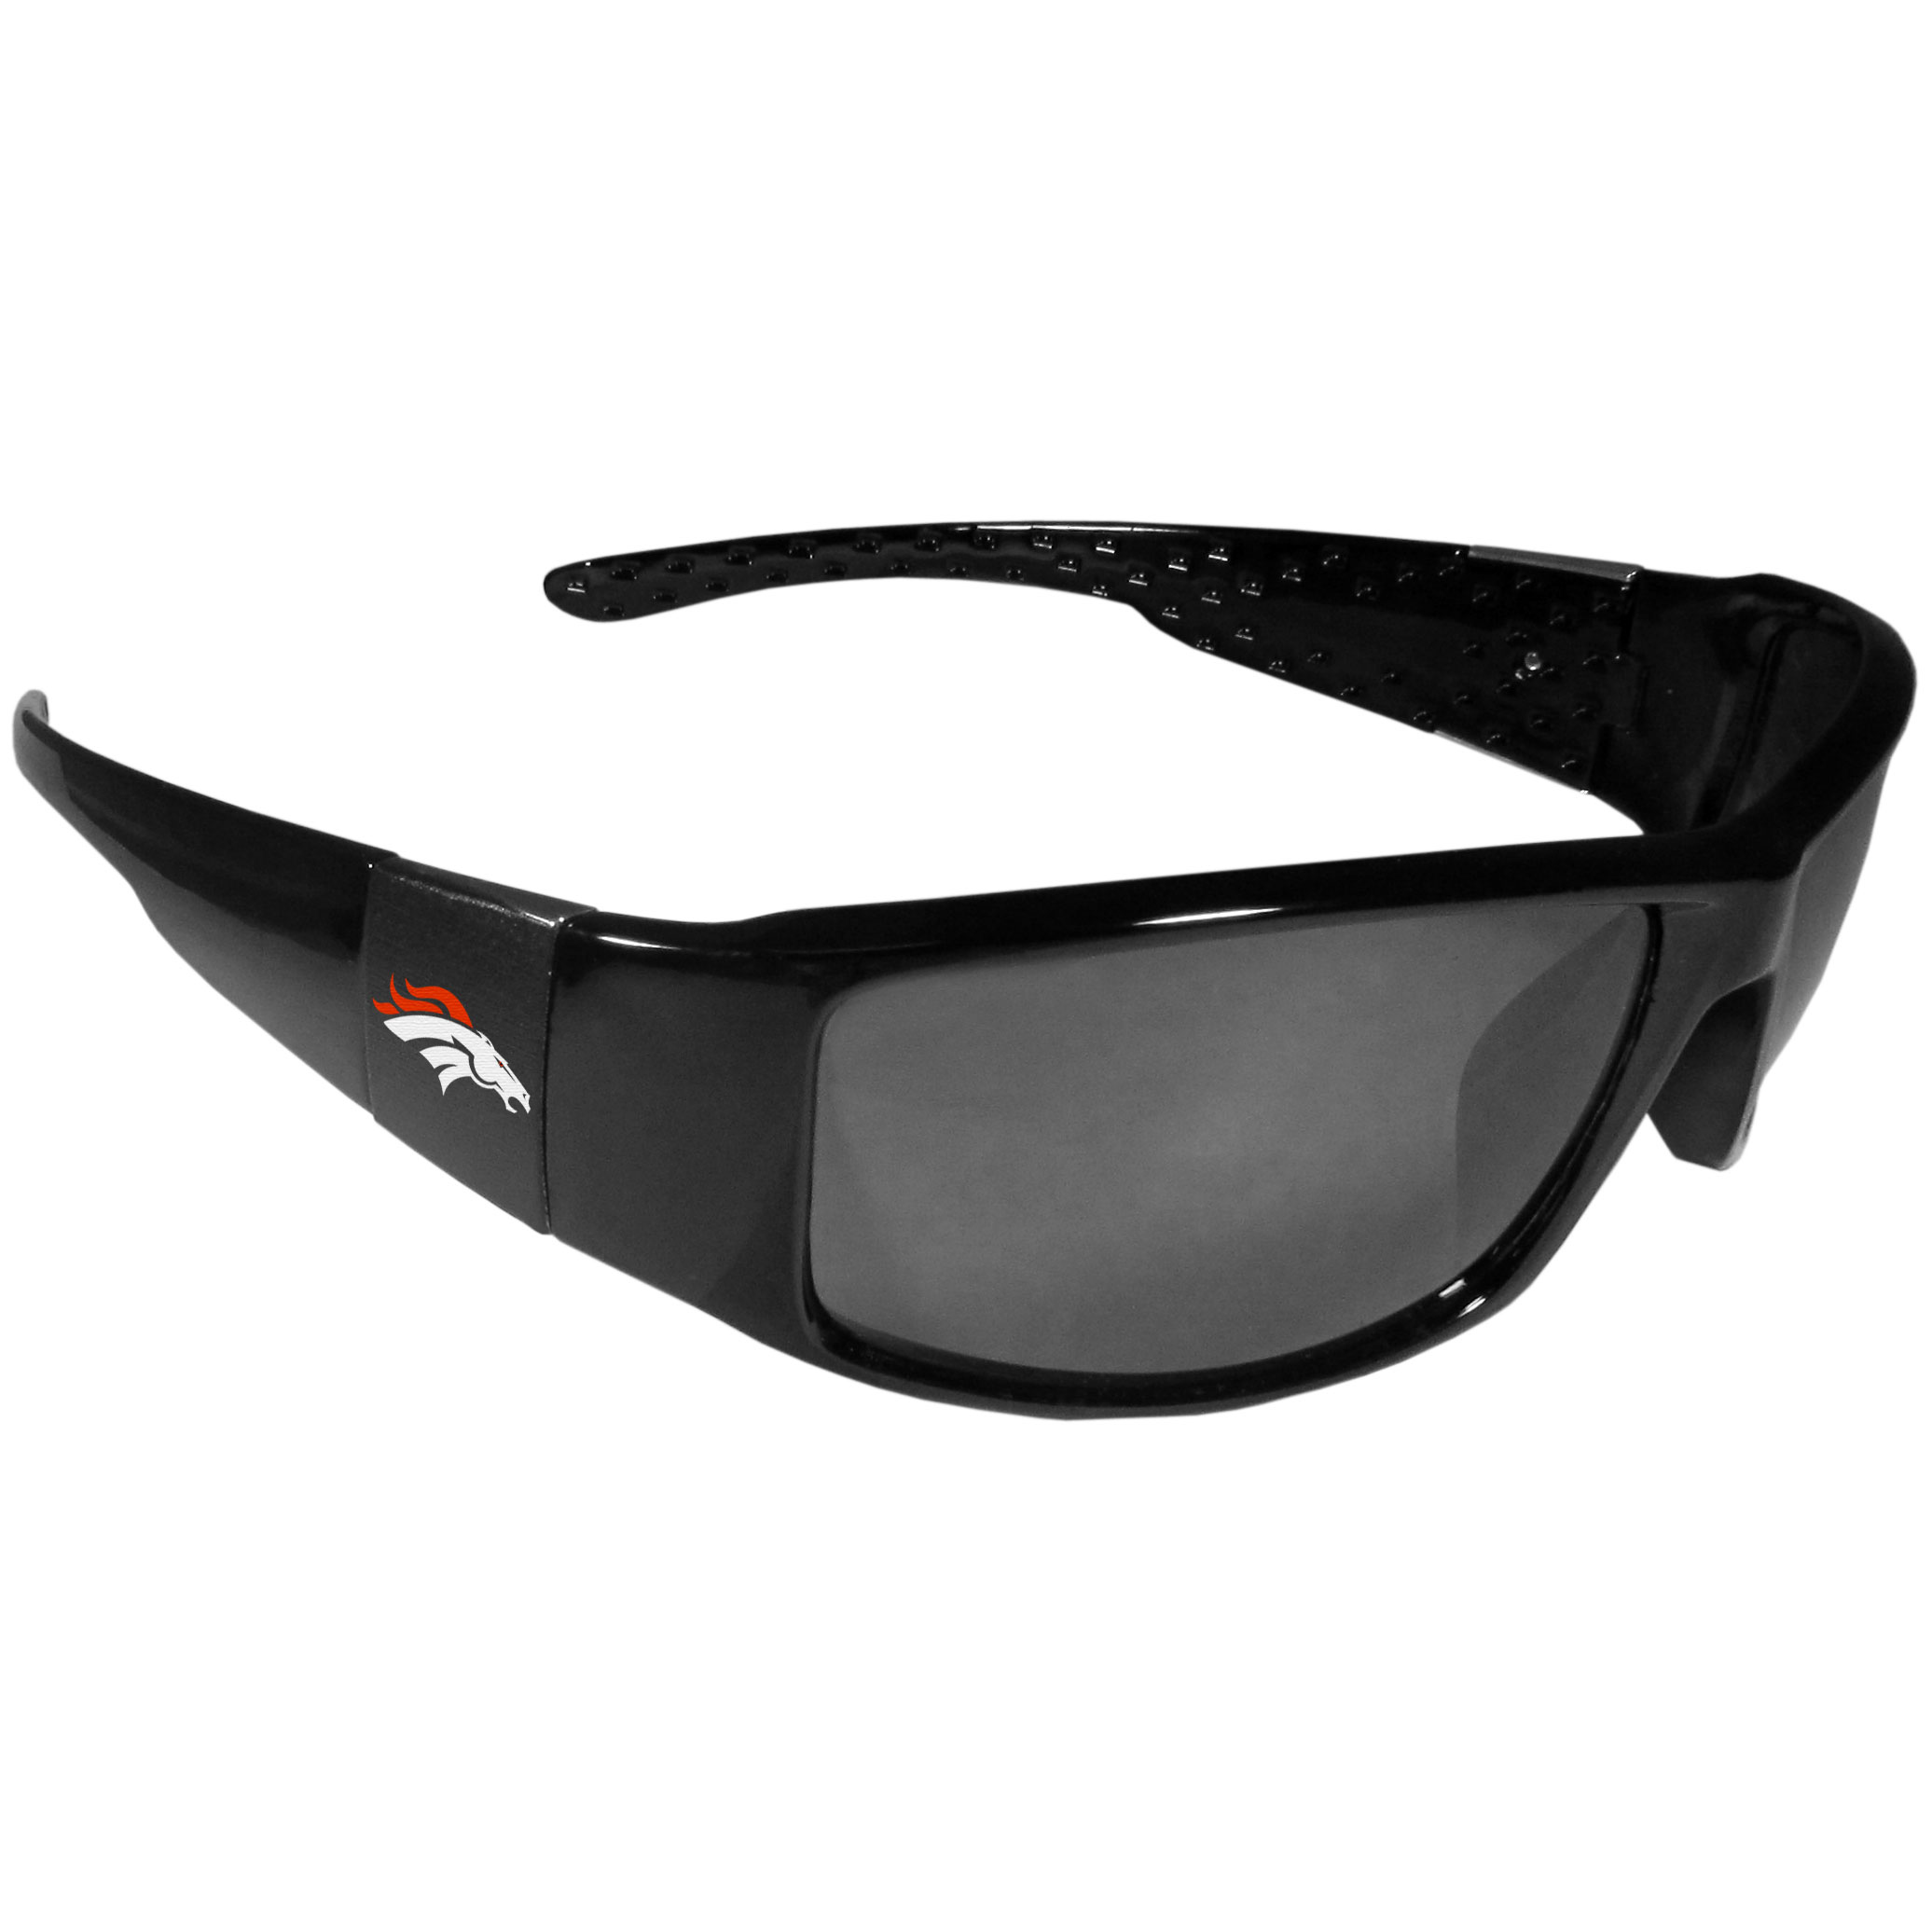 Denver Broncos Black Wrap Sunglasses - These designer inspired frames have a sleek look in all black with  Denver Broncos shields on each arm with a printed logo. The shades are perfect for any outdoor activity like; golfing, driving, hiking, fishing or cheering on the team at a tailgating event or at a home game day BBQ with a lens rating of 100% UVA/UVB for maximum UV protection. The high-quality frames are as durable as they are fashionable and with their classic look they are the perfect fan accessory that can be worn everyday for every occasion.